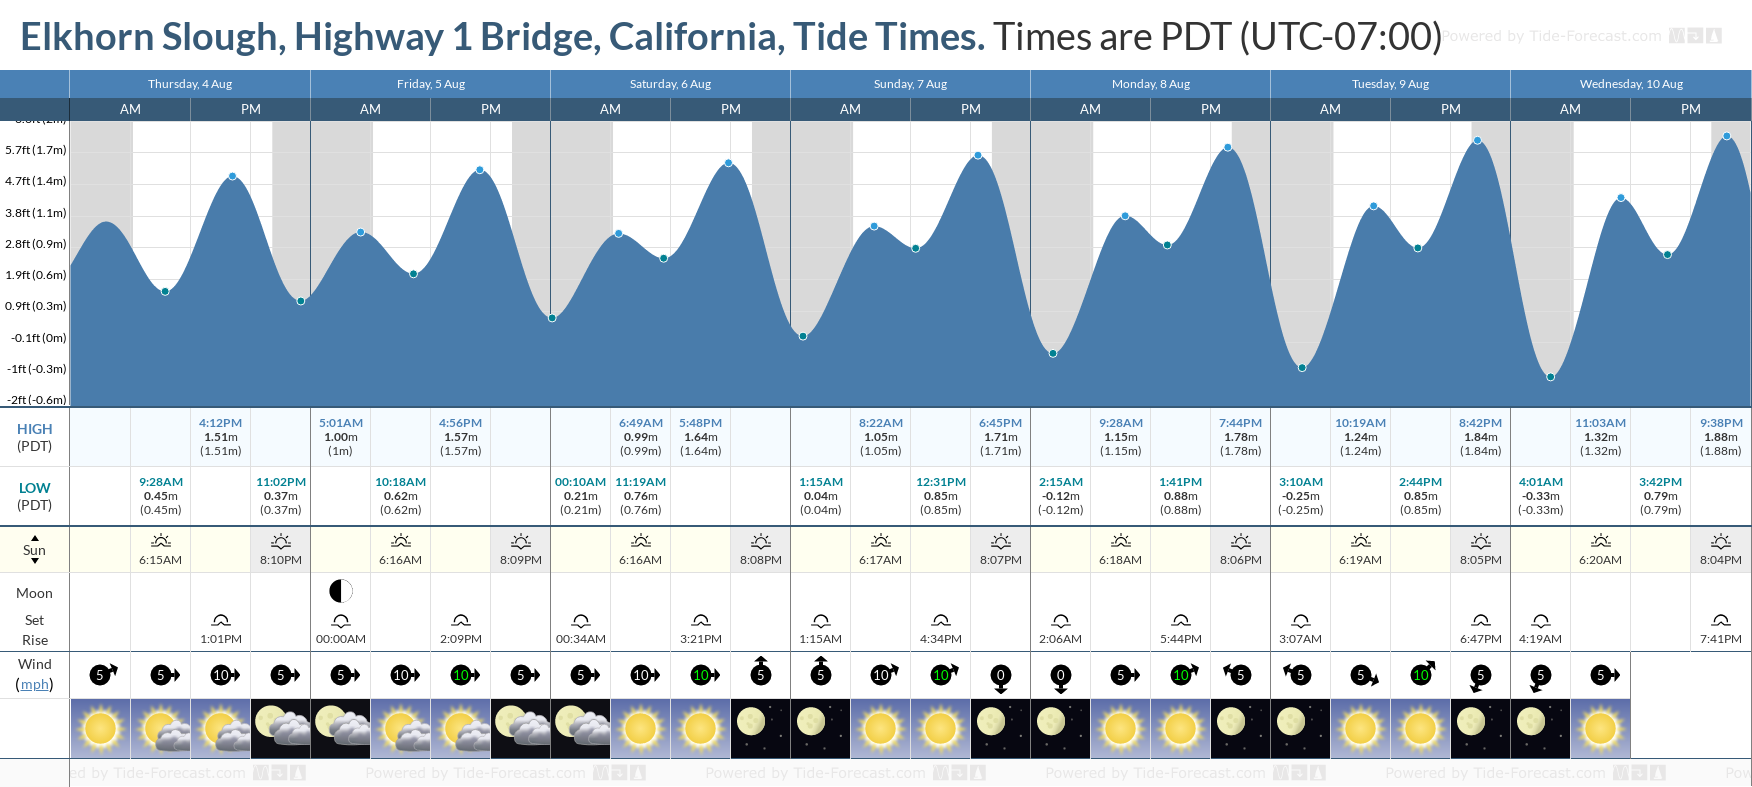 Elkhorn Slough, Highway 1 Bridge, California Tide Chart including high and low tide tide times for the next 7 days